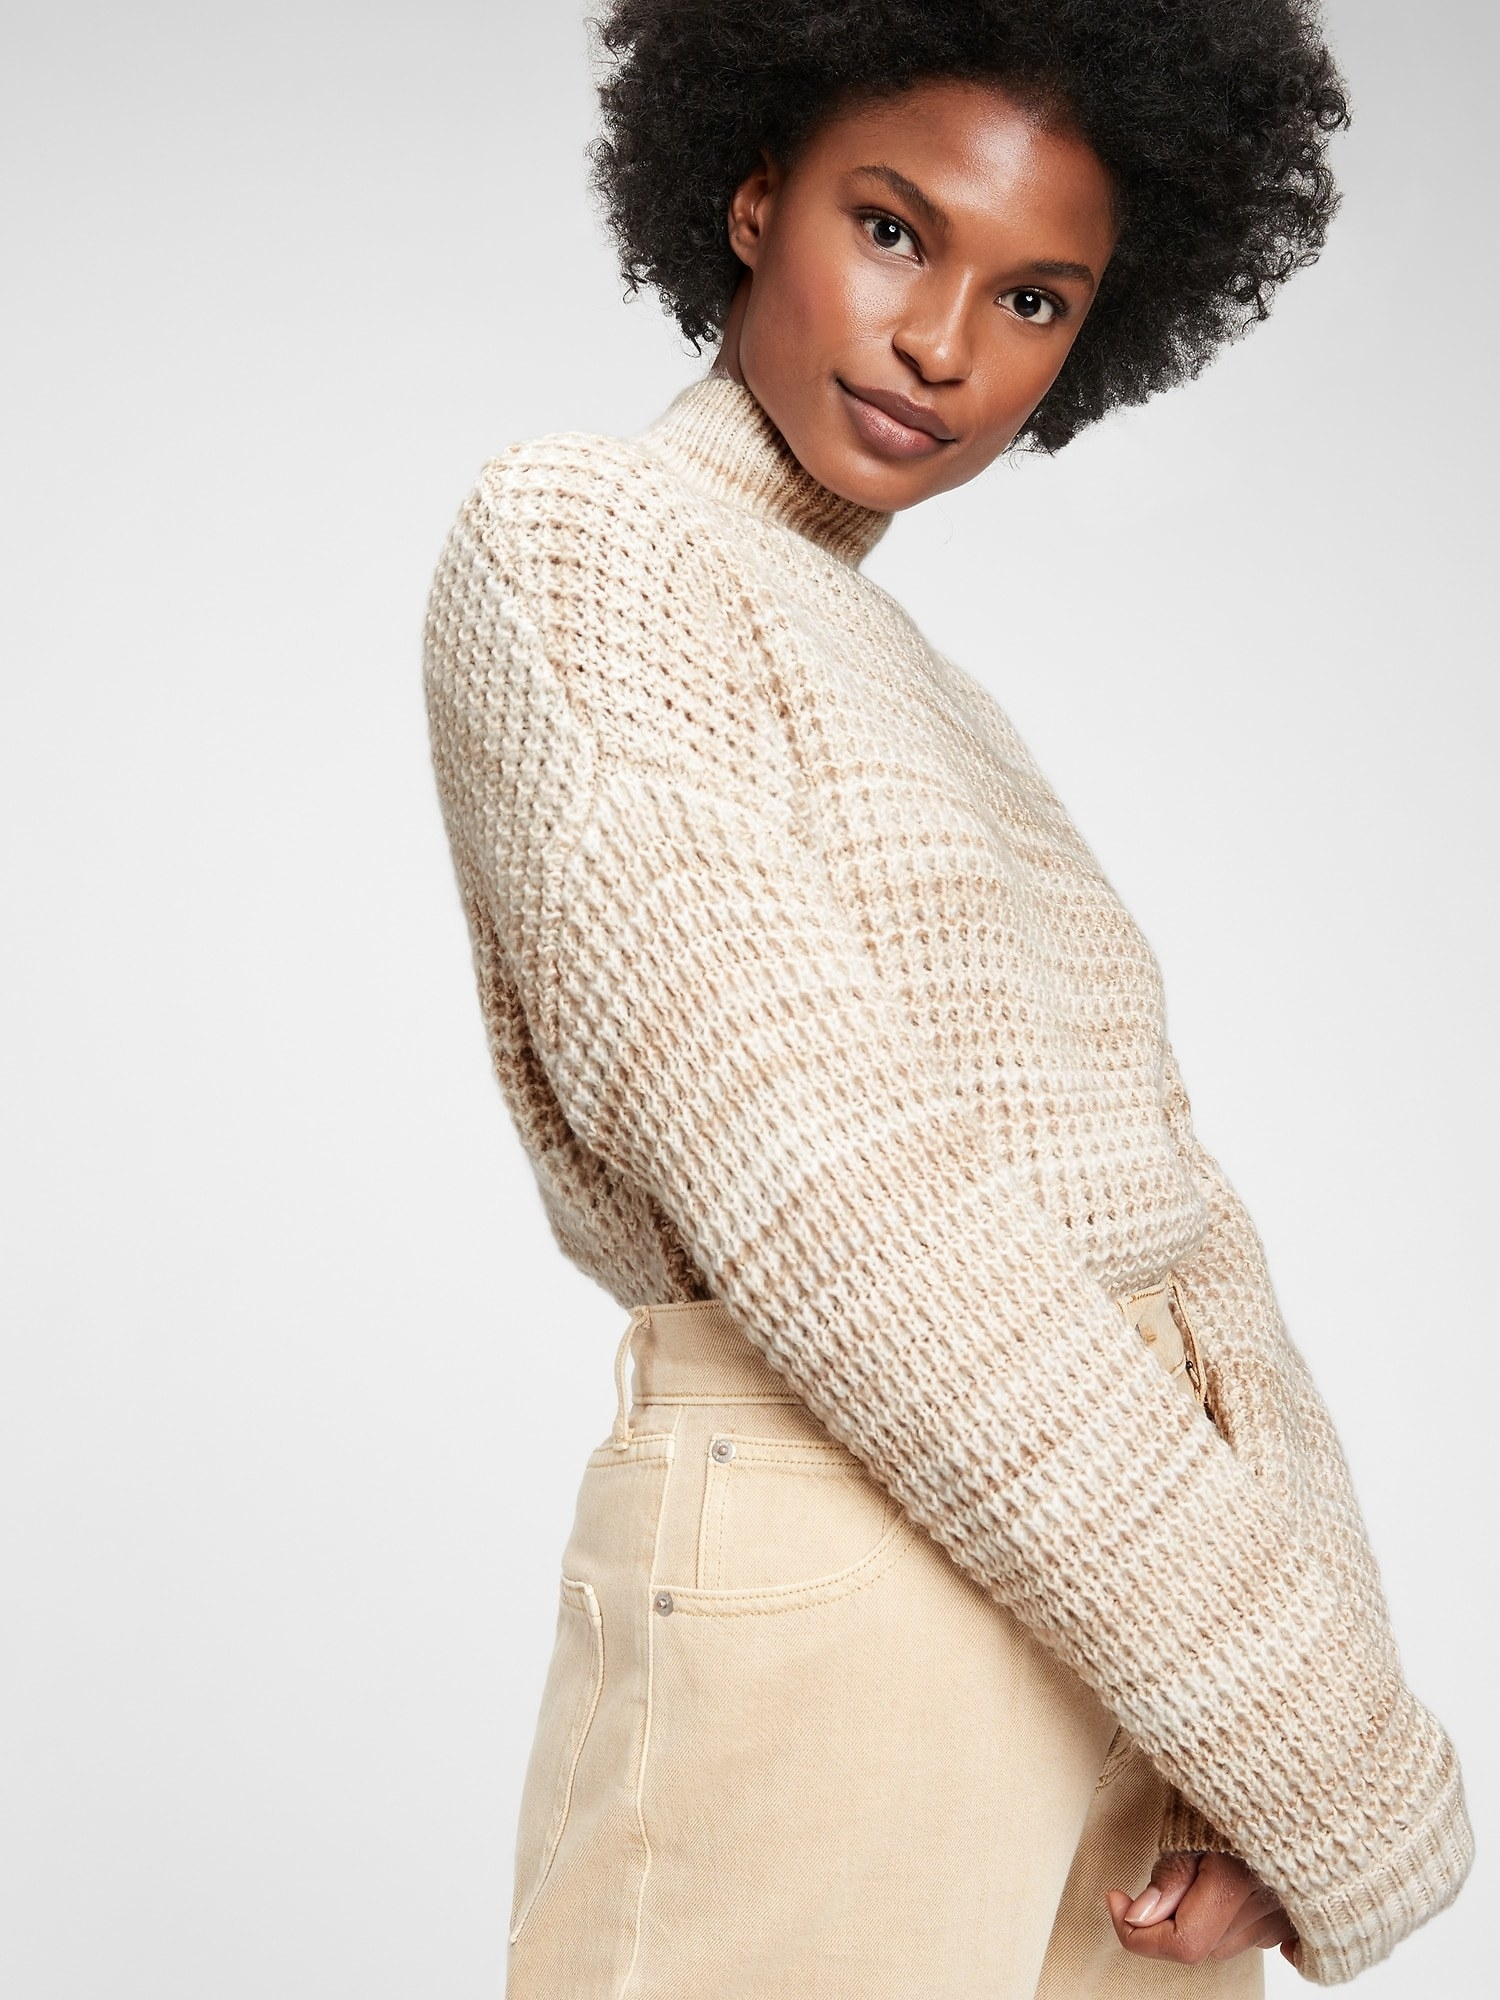 The sweater in natural beige